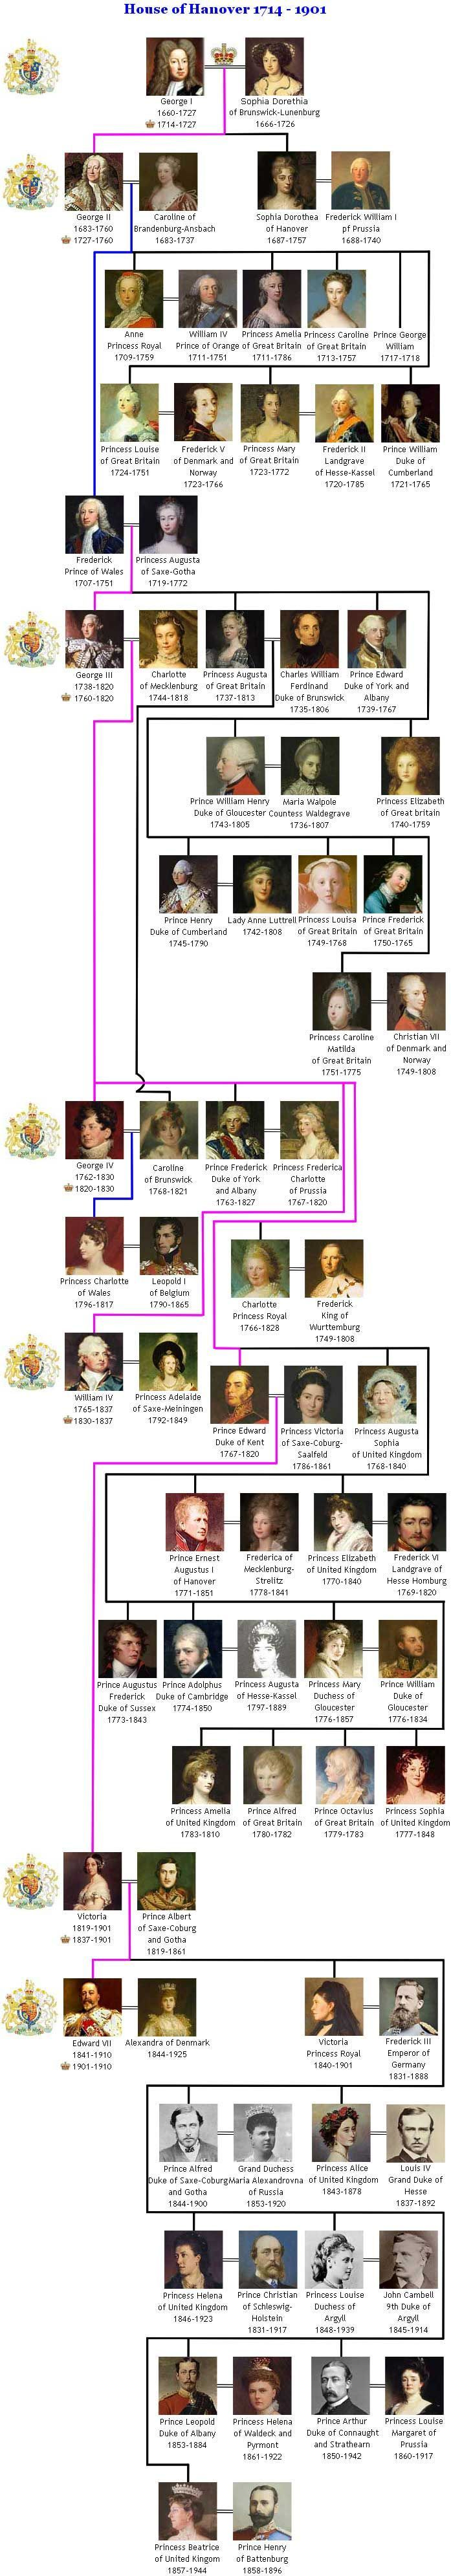 best ideas about royal family trees royal great britain the royal house of hanover was the first dynasty in great britain